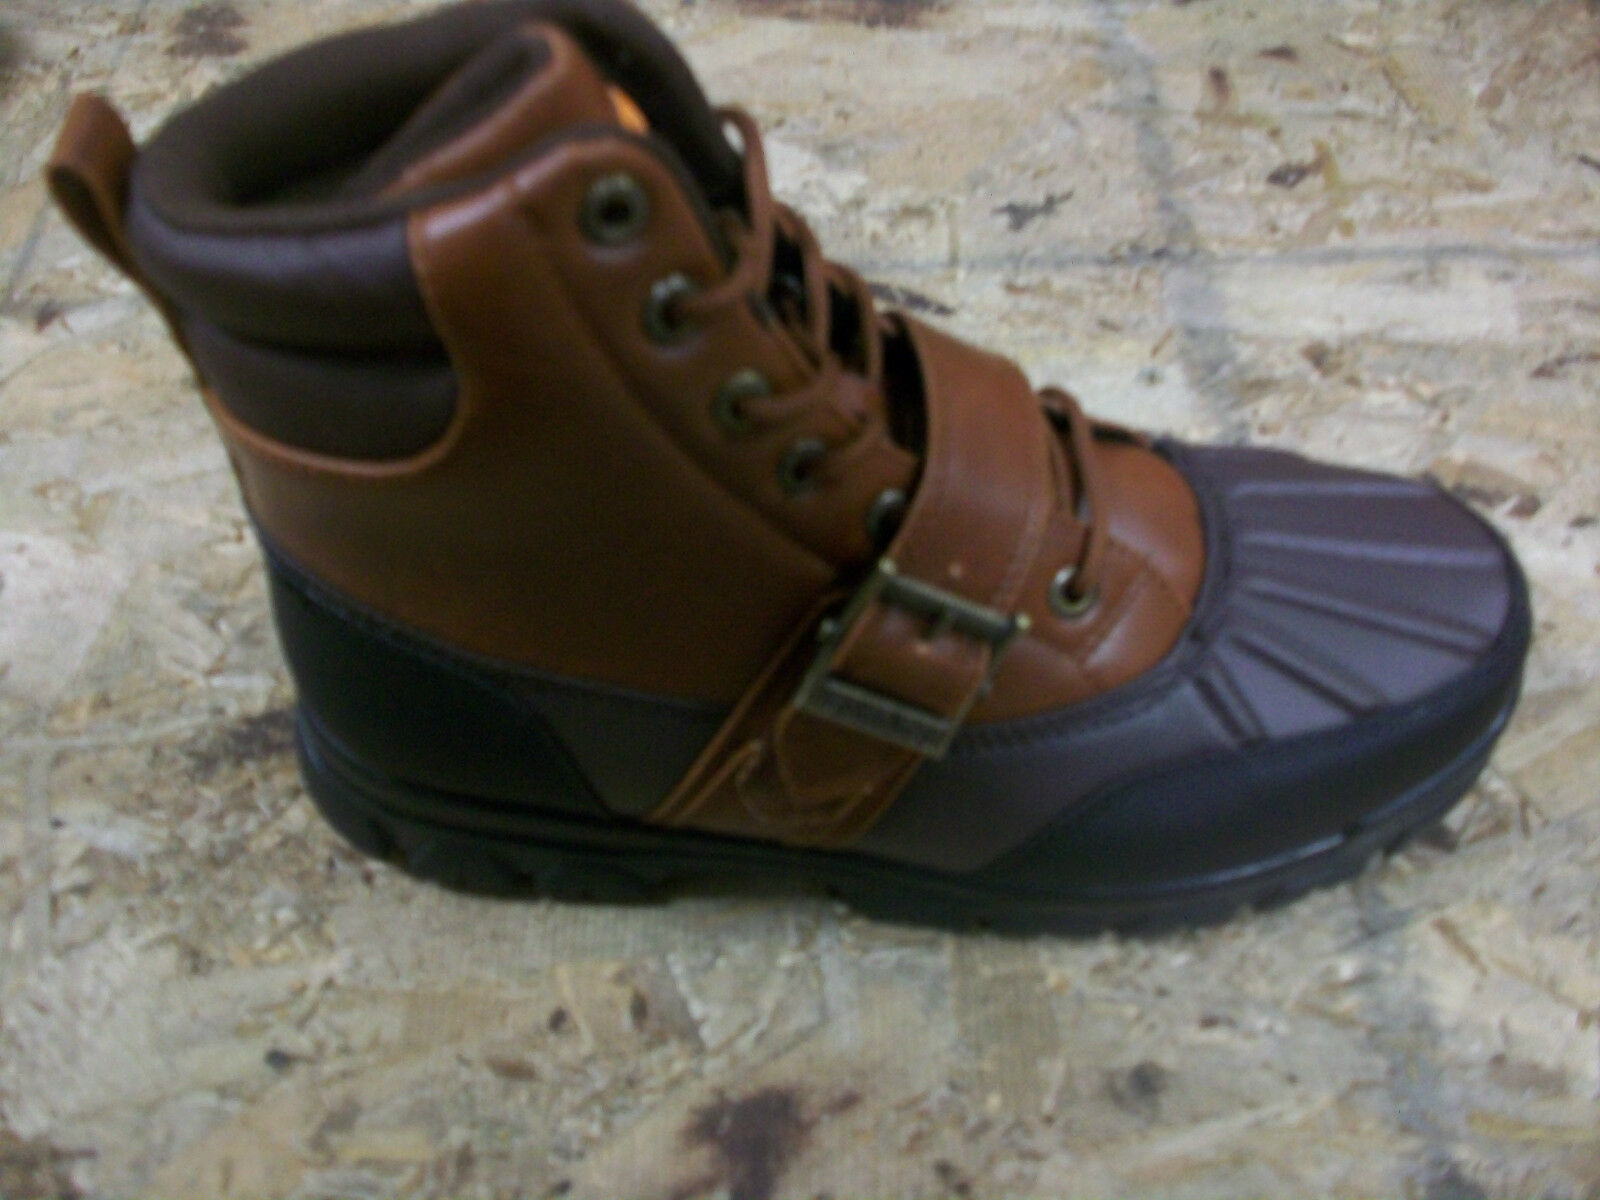 New Men's Vikings Amarillo High Brown/Black Ankle Boots Size 12 Brand New!